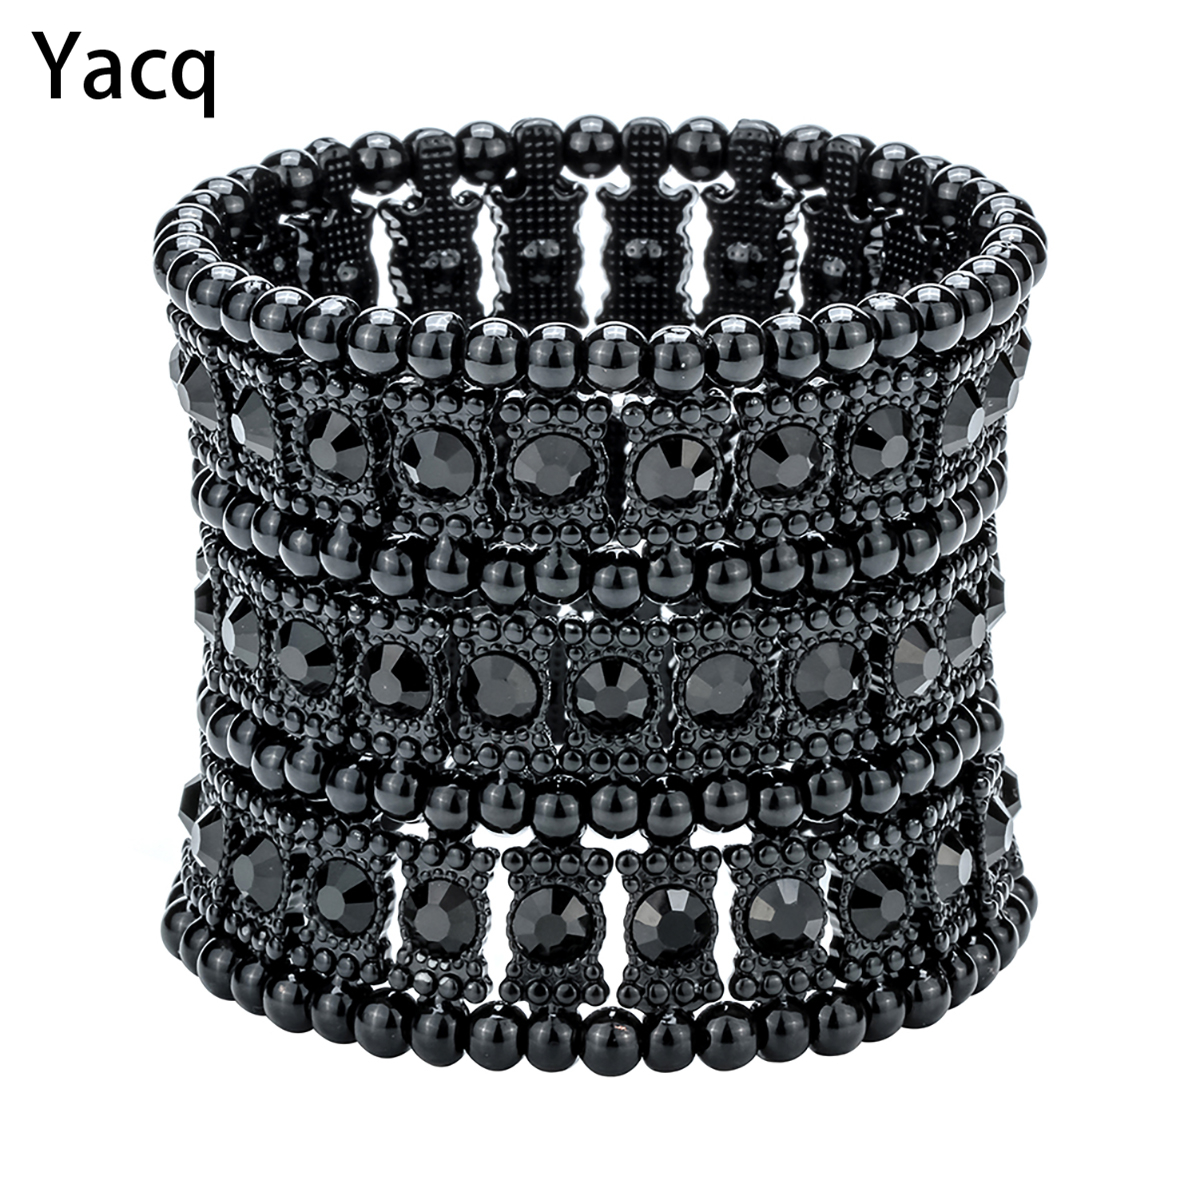 Yacq Multilayer Peregangan Cuff gelang Wanita Kristal Wedding Bridal Party Fashion Jewelry Hadiah B11 Perak Emas Hitam Dropshipping